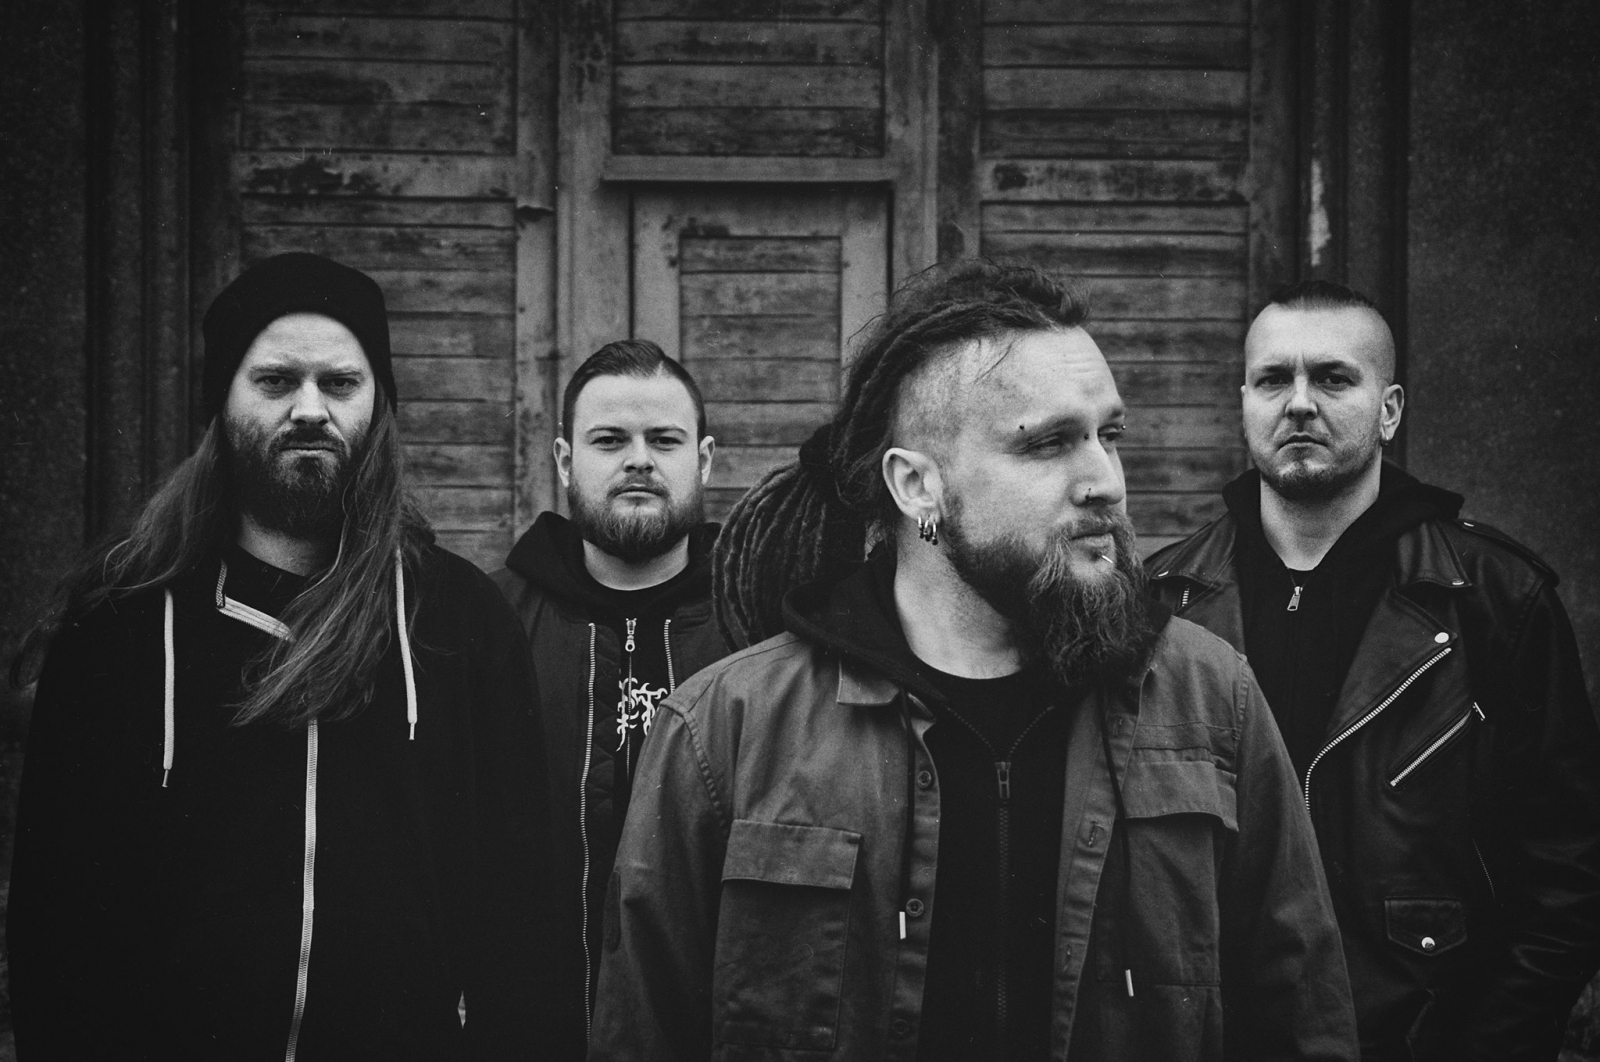 metal band Decapitated